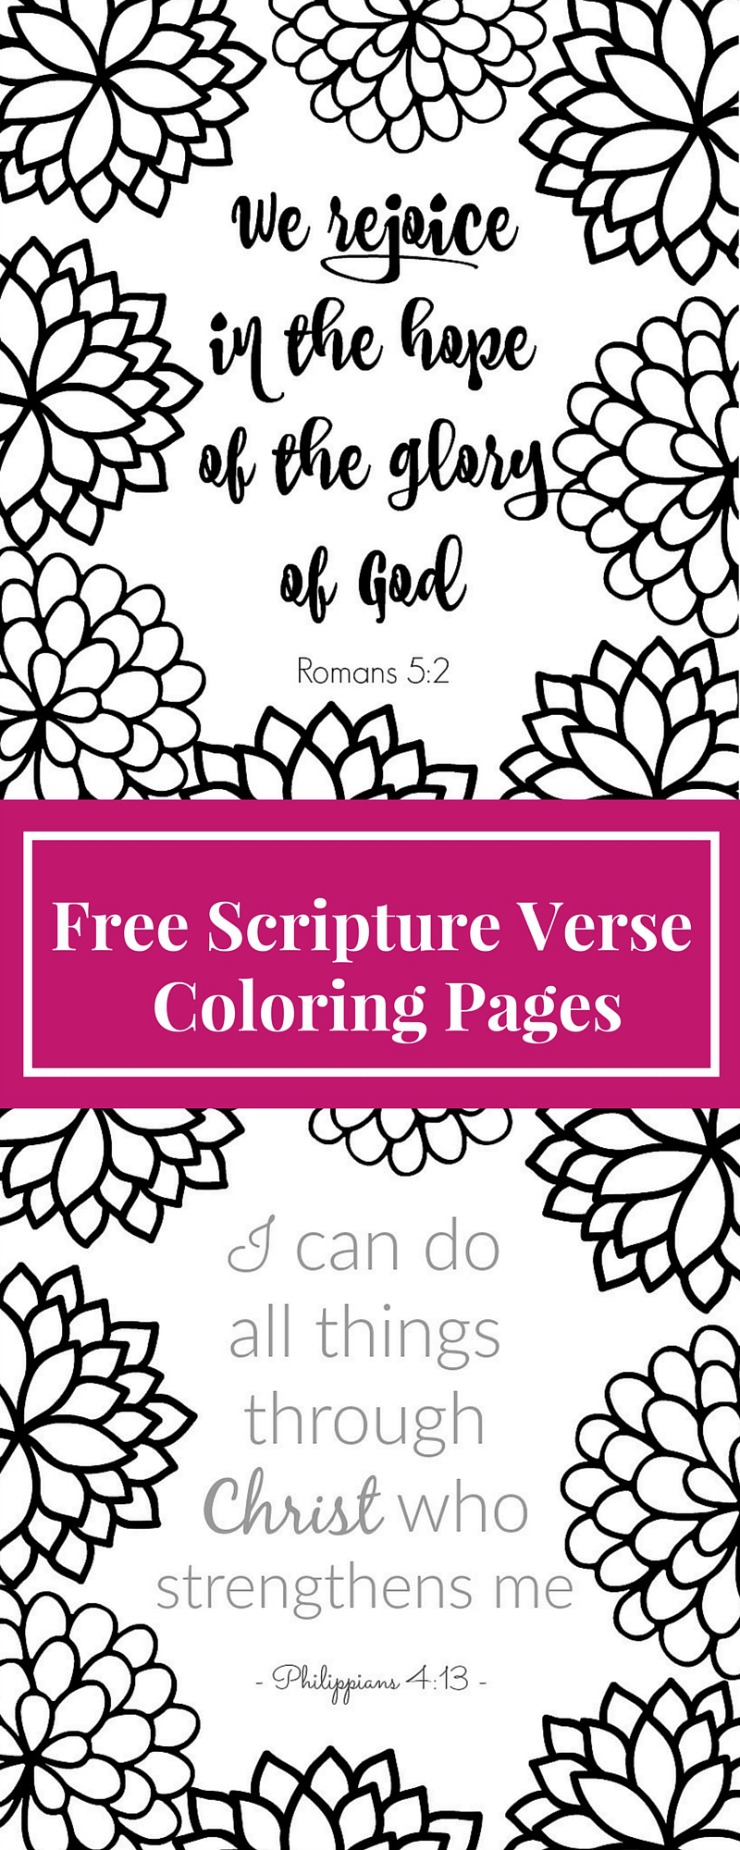 Coloring pages with bible verses - I Just Got Into Coloring Pages Again As A Grown Up These Bible Verse Coloring